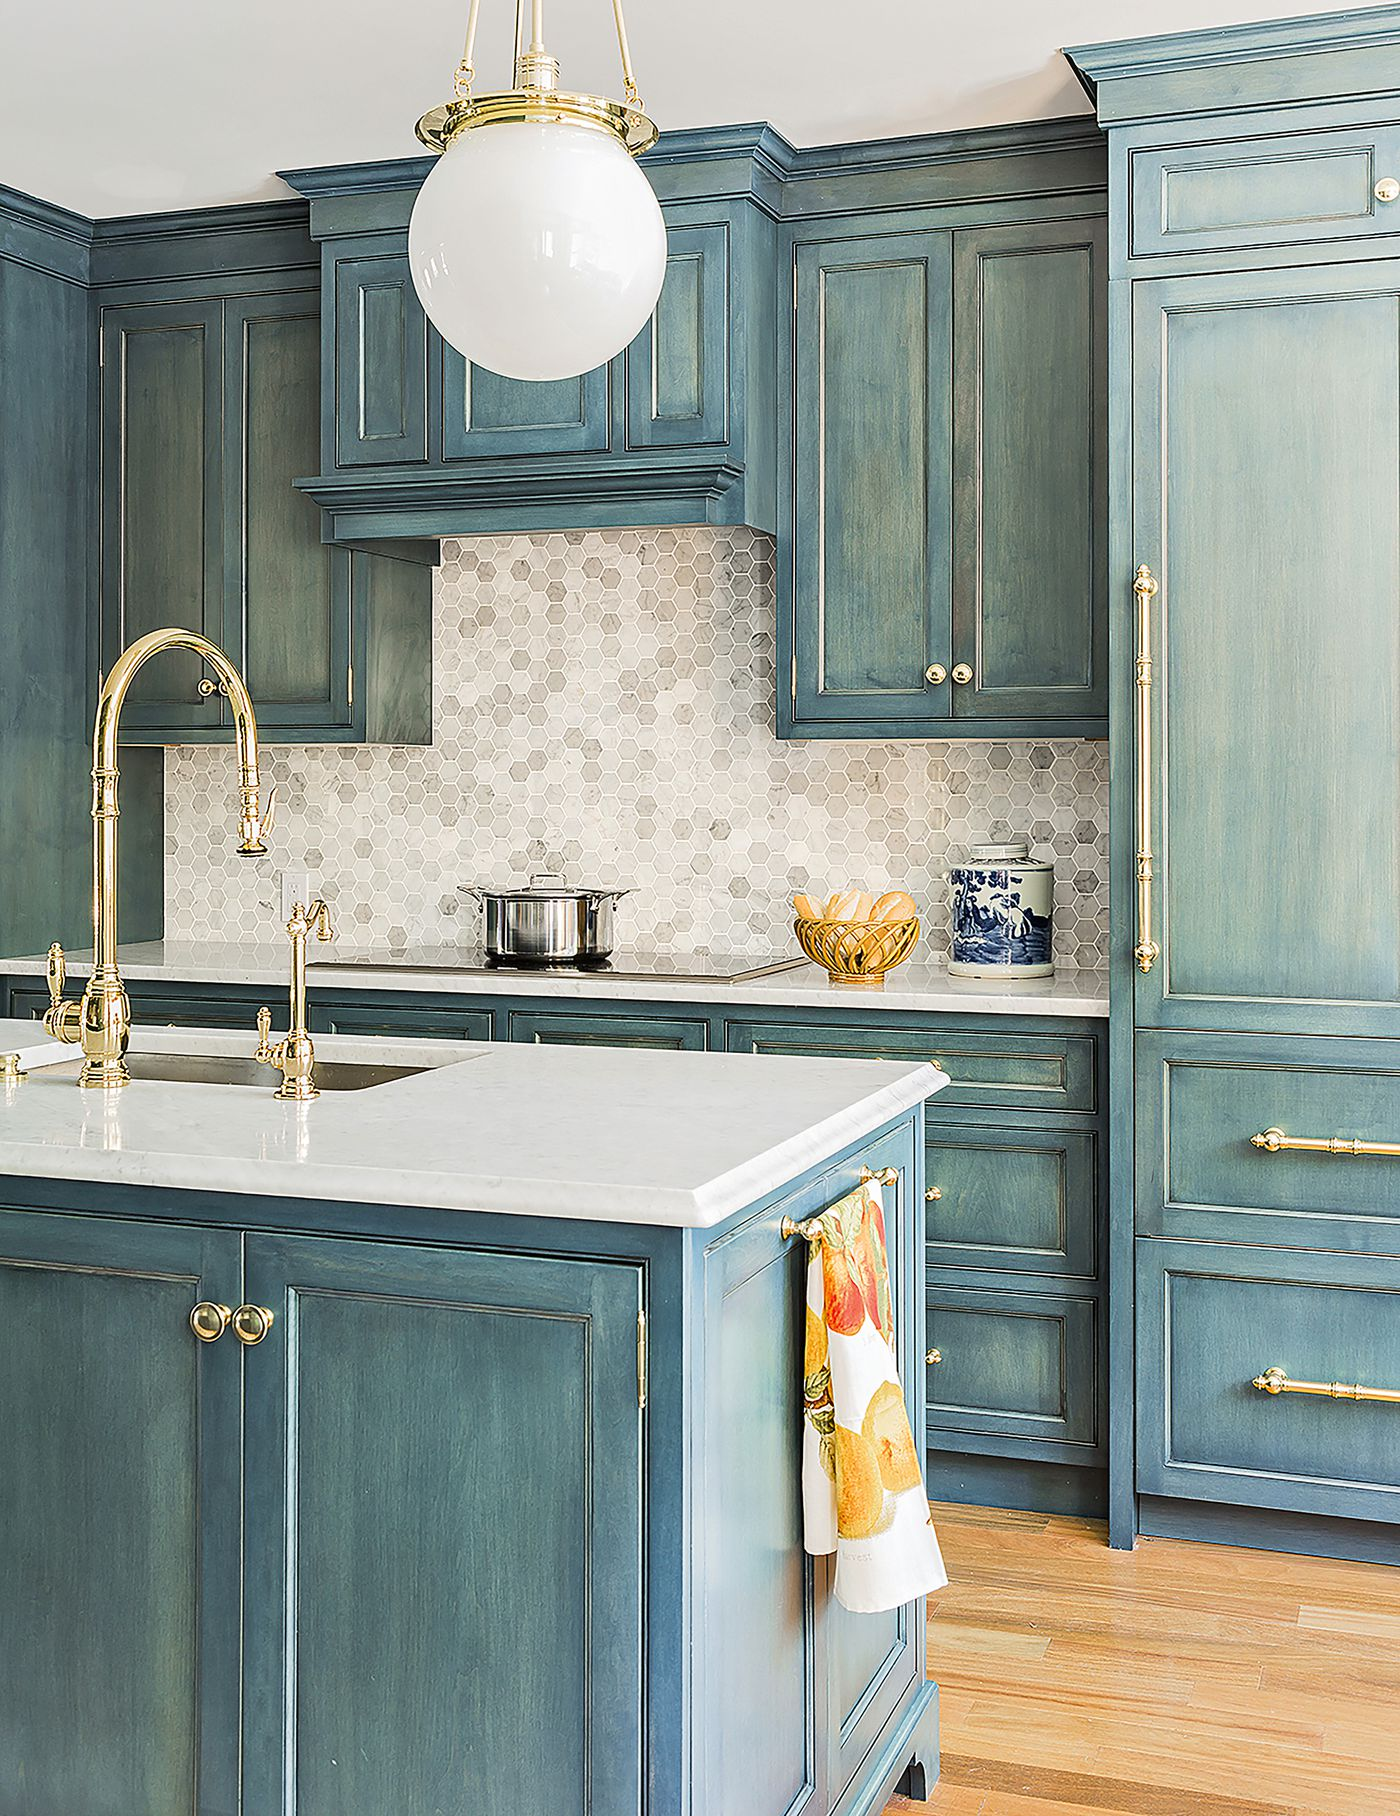 How To Paint Kitchen Cabinets This